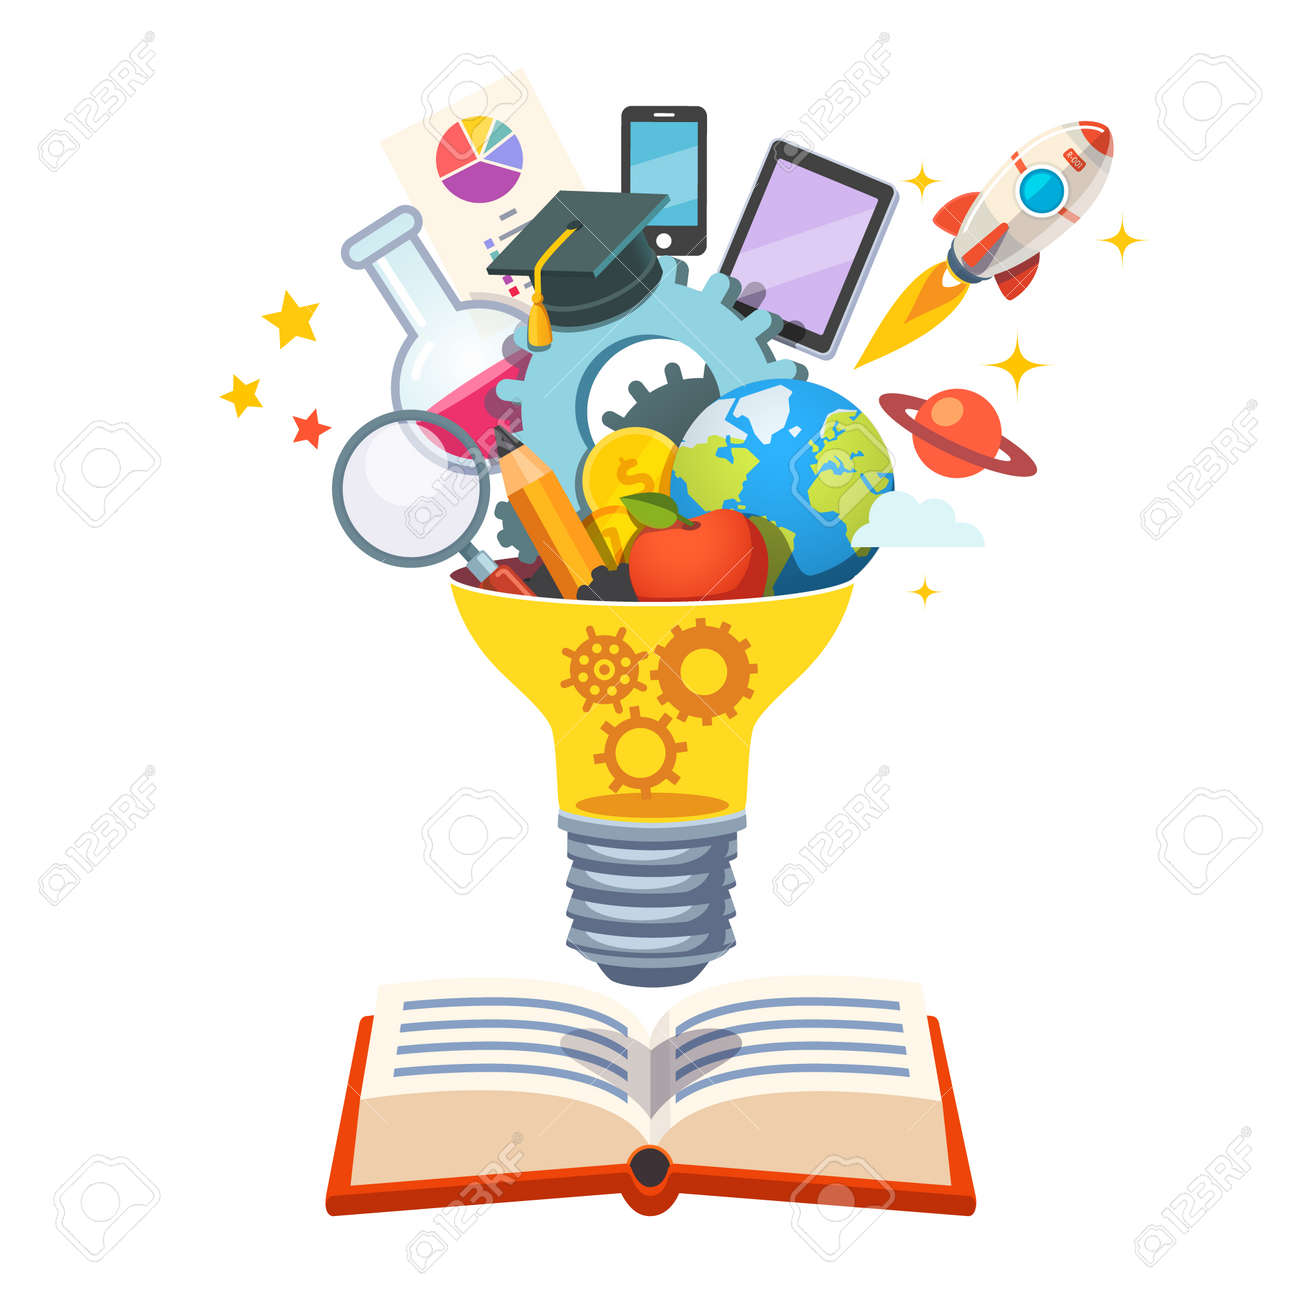 Light bulb with gears inside floating over big book bursting with new ideas. Education concept. Flat style vector illustration isolated on white background. Stock Vector - 52901822